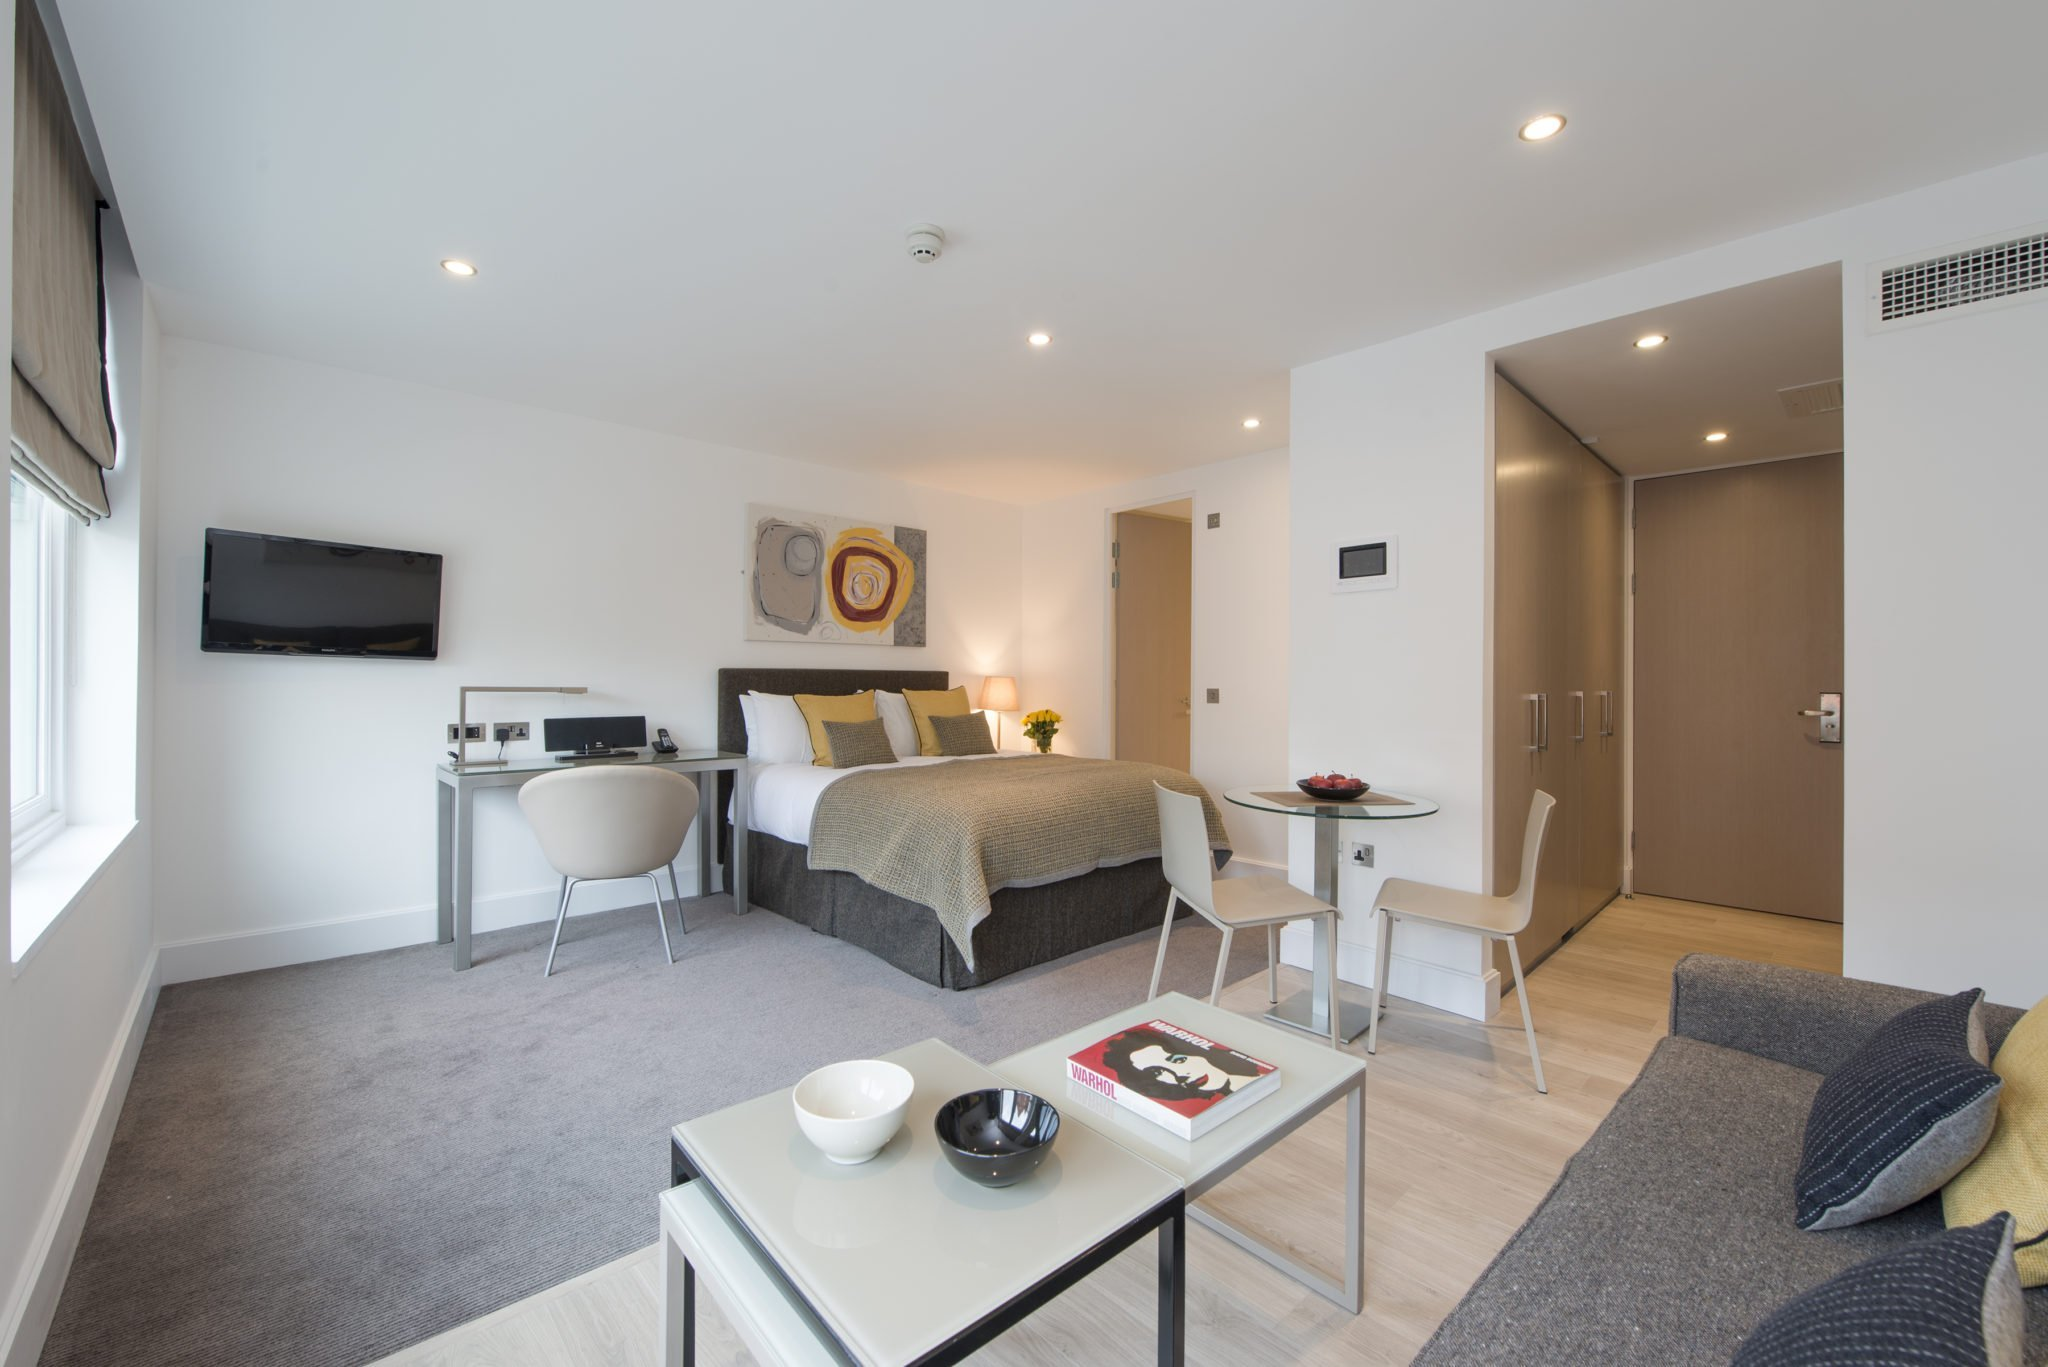 Serviced-Apartments-Clerkenwell-|-Stylish-Apartments-|-Free-Wifi-&-24/7-Reception-Desk-|-Fully-Equipped-Kitchen-|0208-6913920|-Urban-Stay